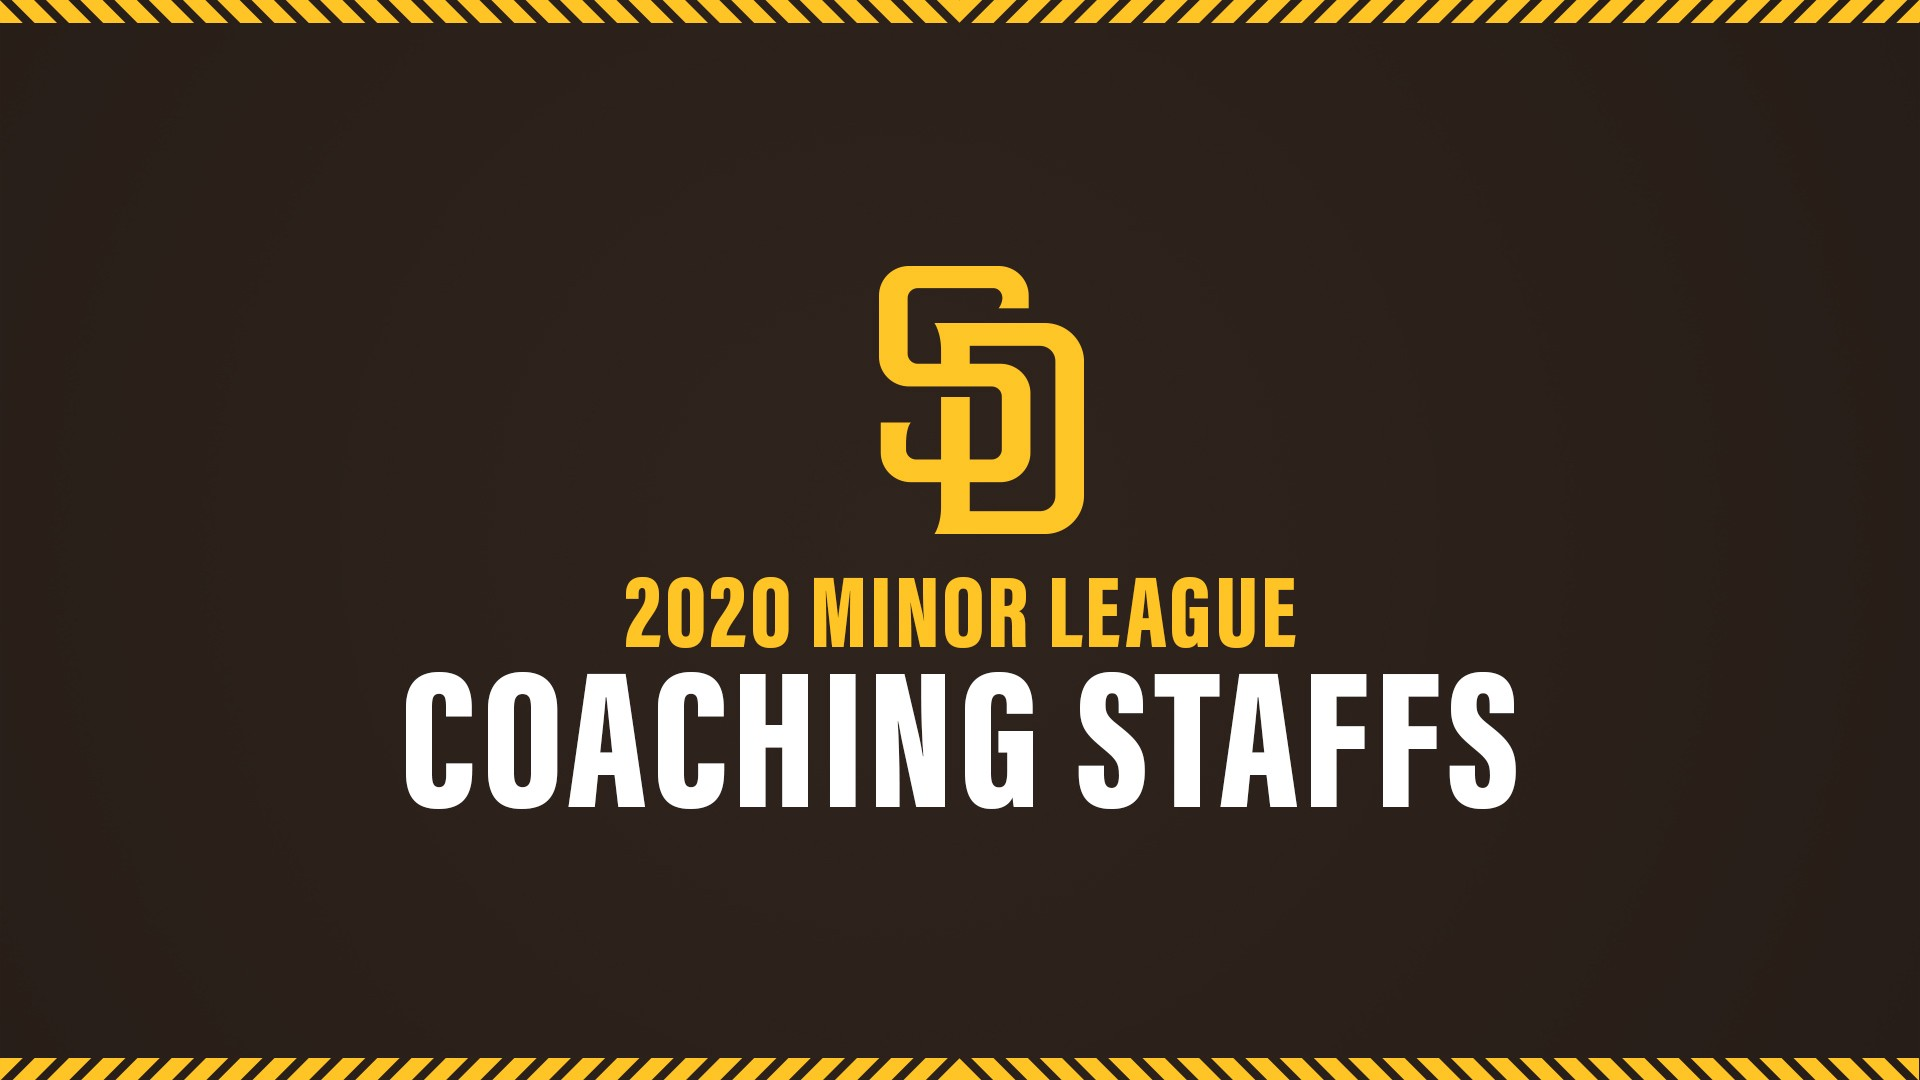 Padres Announce Minor League Coaching Staffs By Friarwire Friarwire